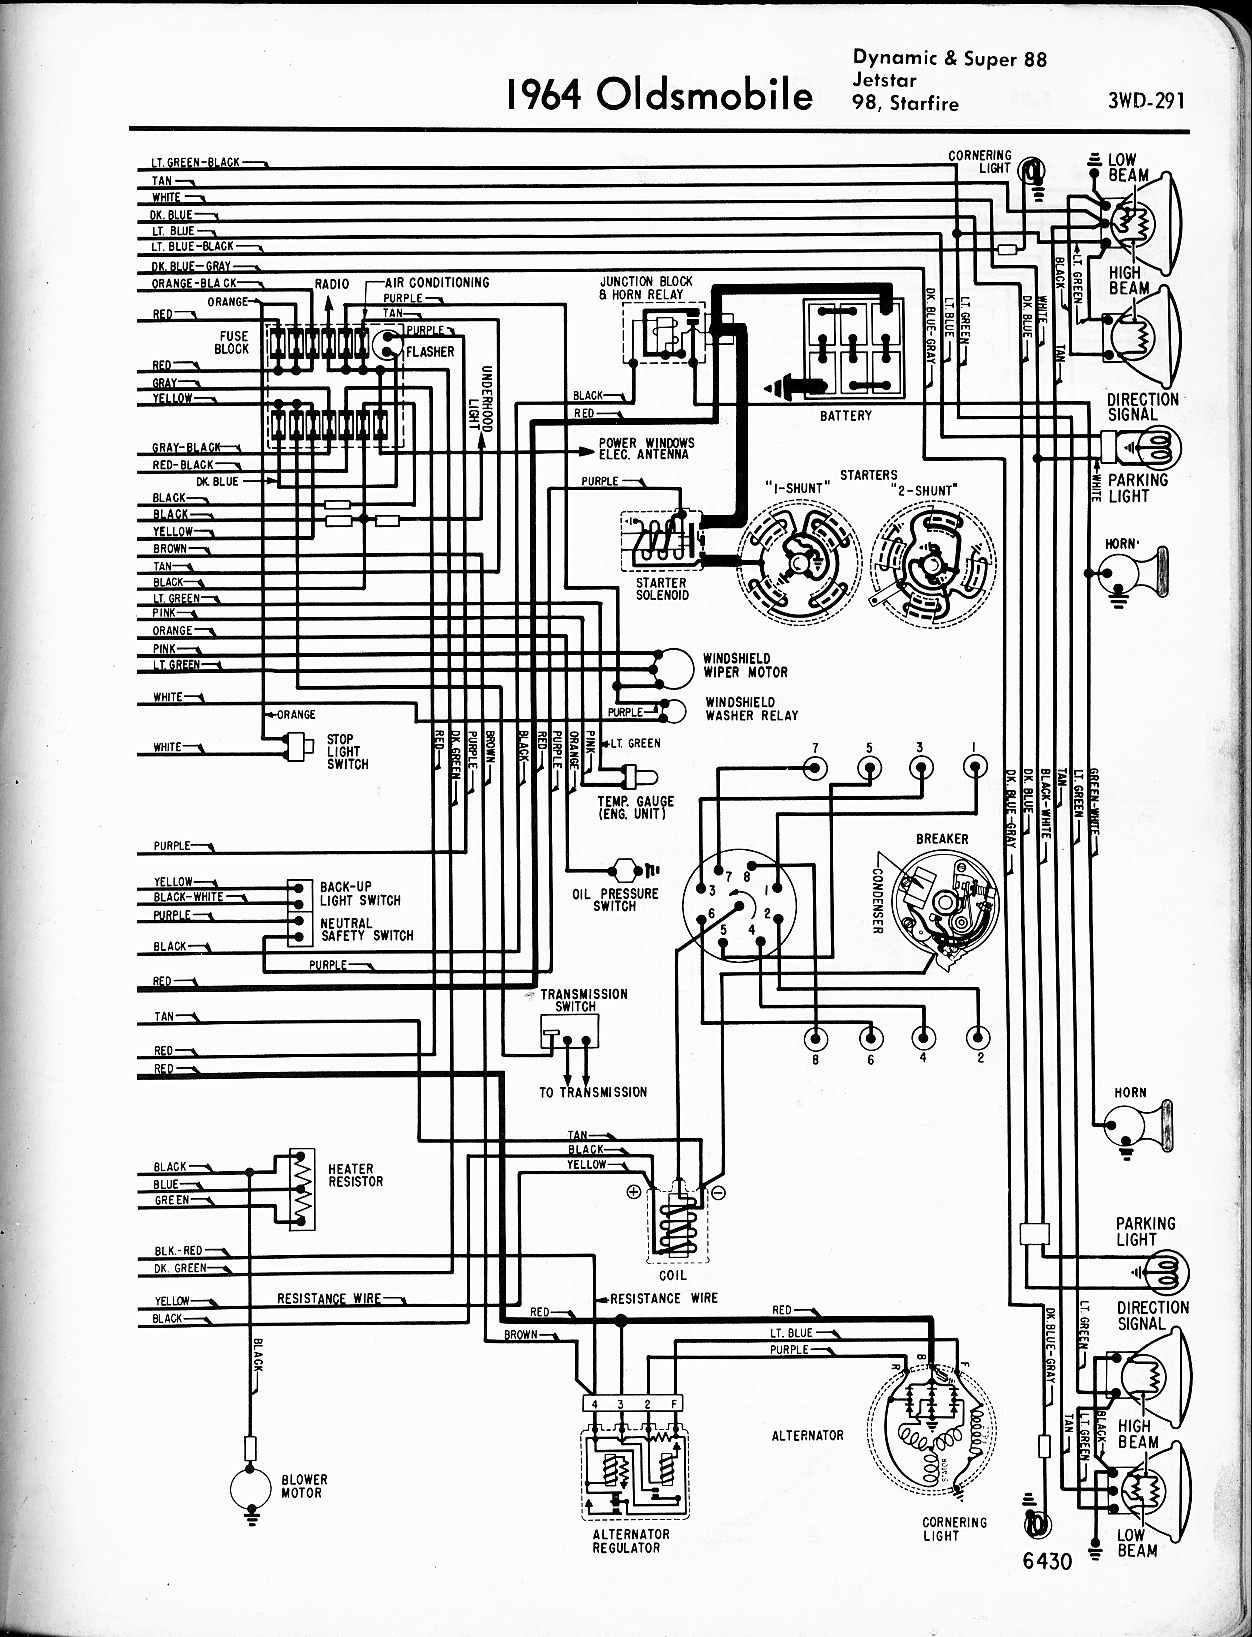 1964 Oldsmobile Cutl Wiring Diagram on oldsmobile cutl supreme wiring diagram